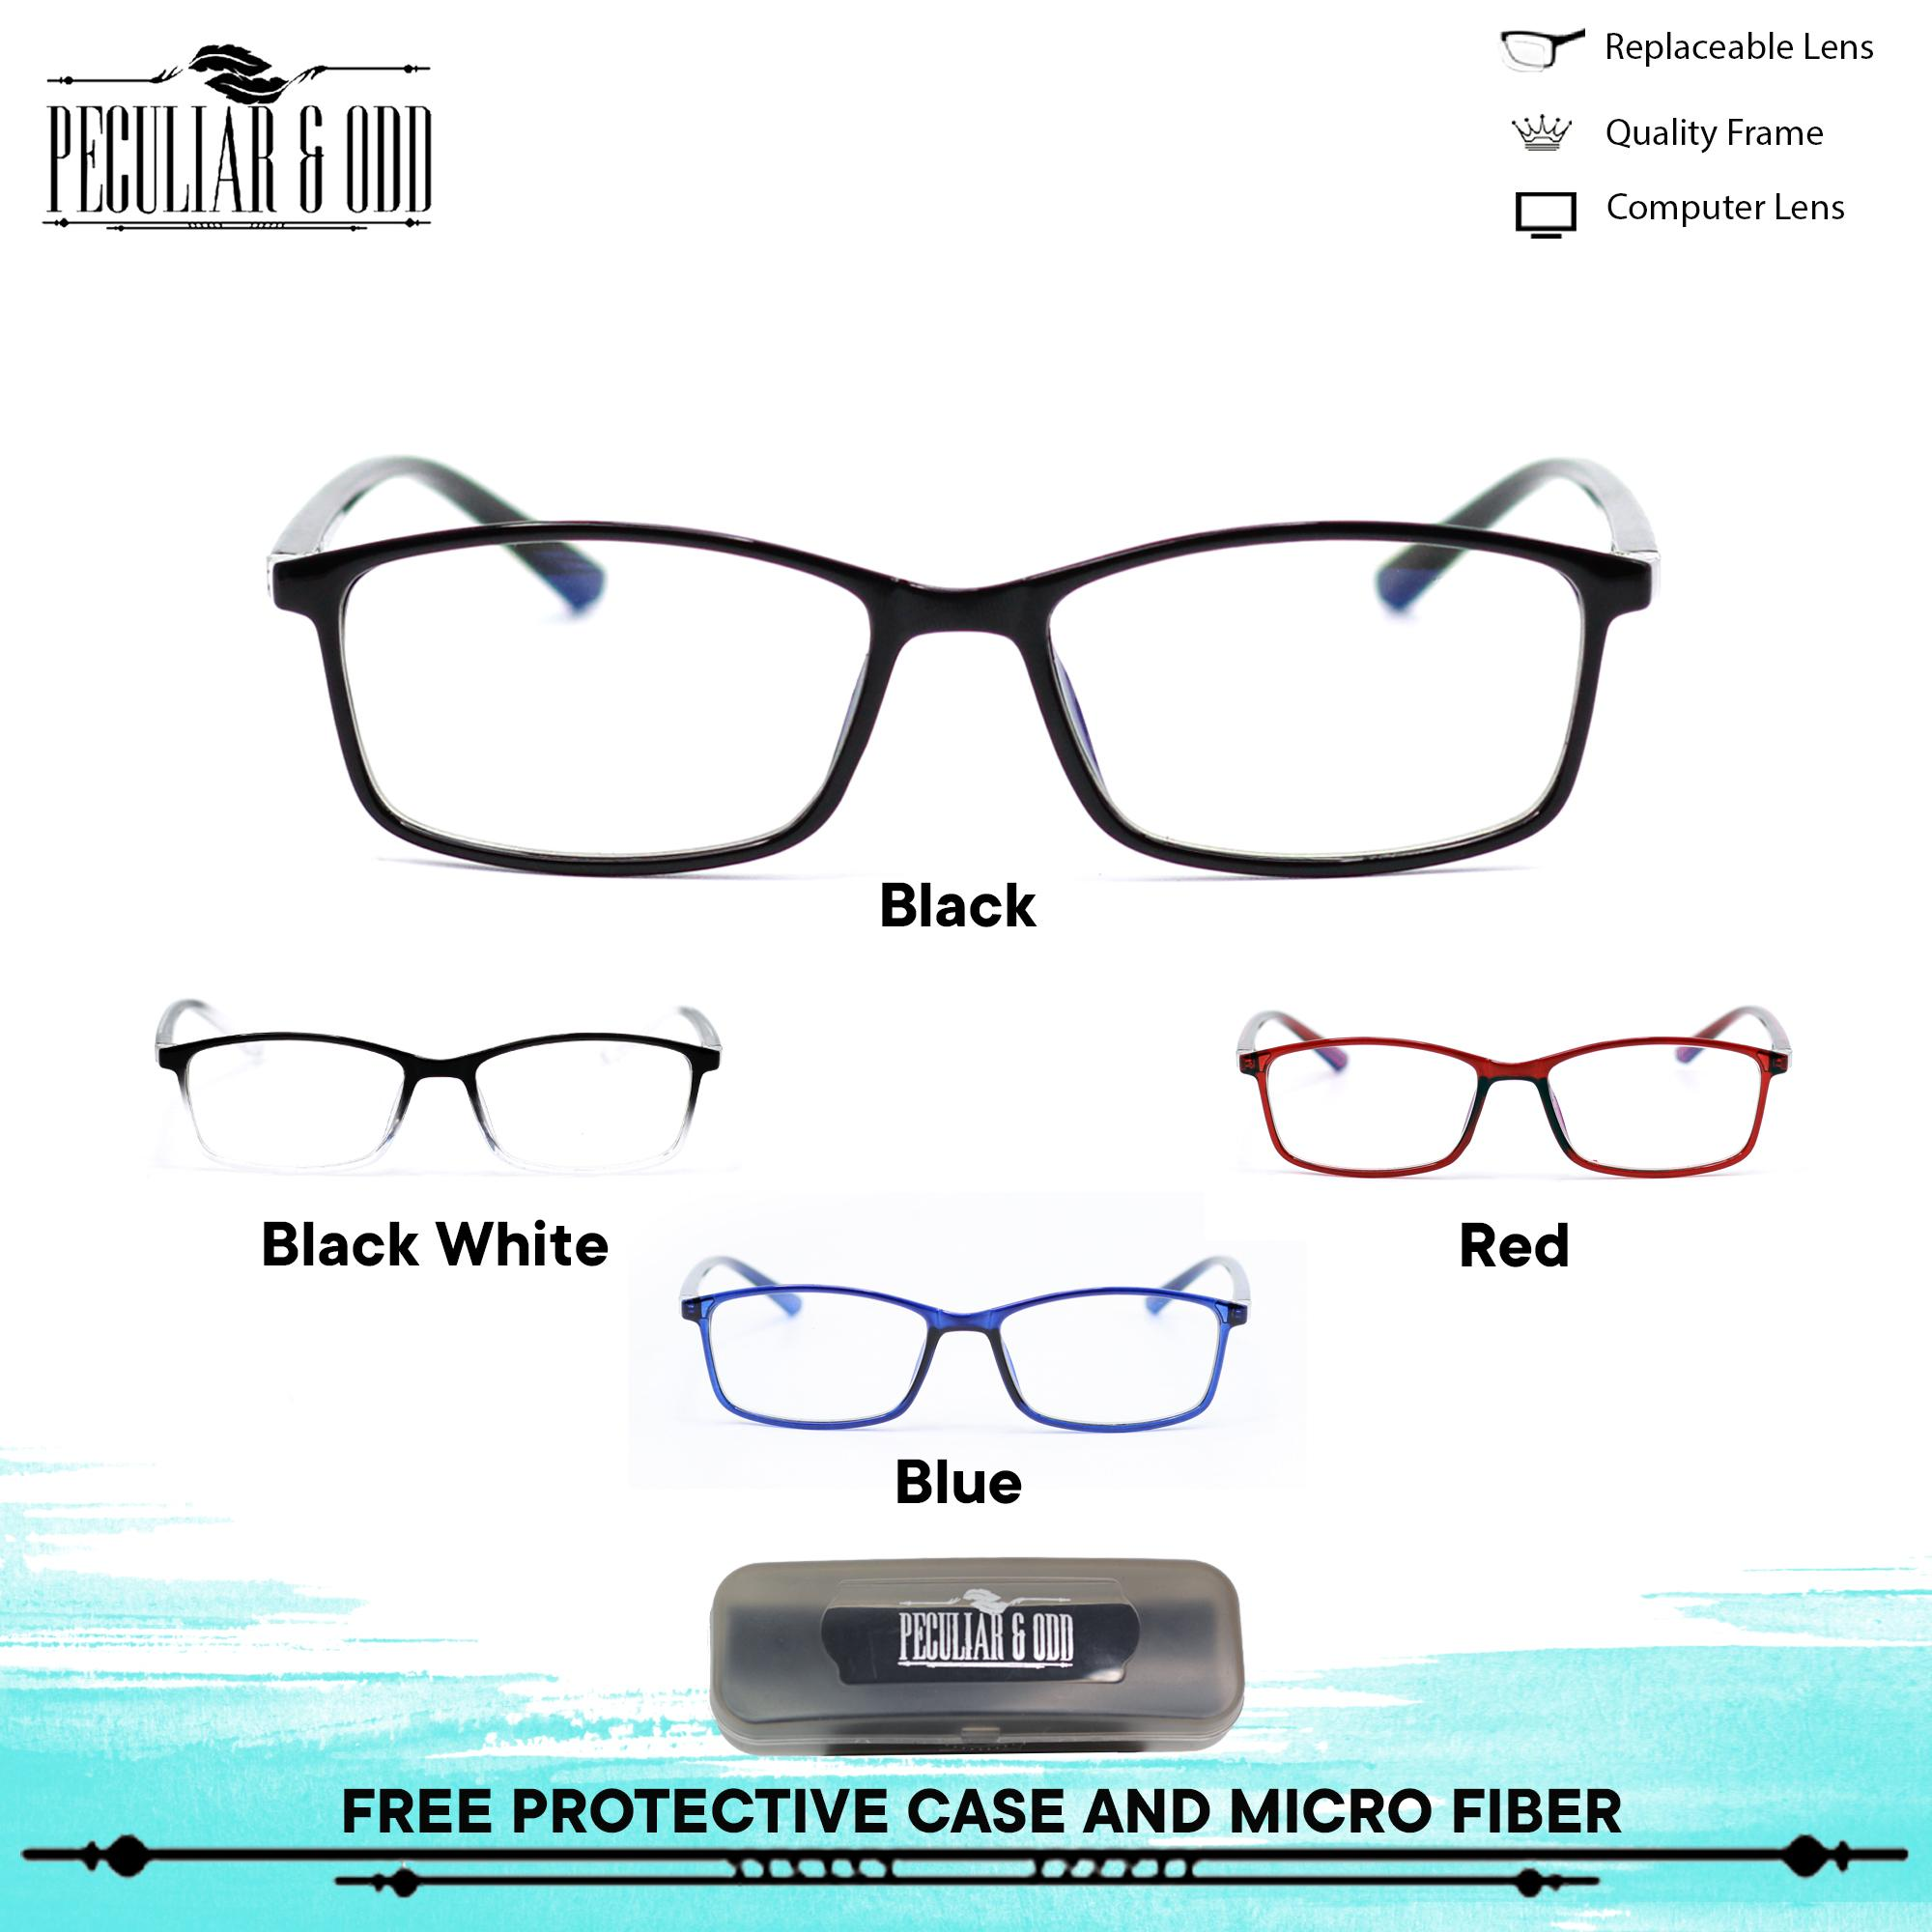 4a97b41b4064 Peculiar Square Eyeglasses 2821 Antiradiation Lenses Lightweight  Replaceable Optical Lens Unisex Eyewear